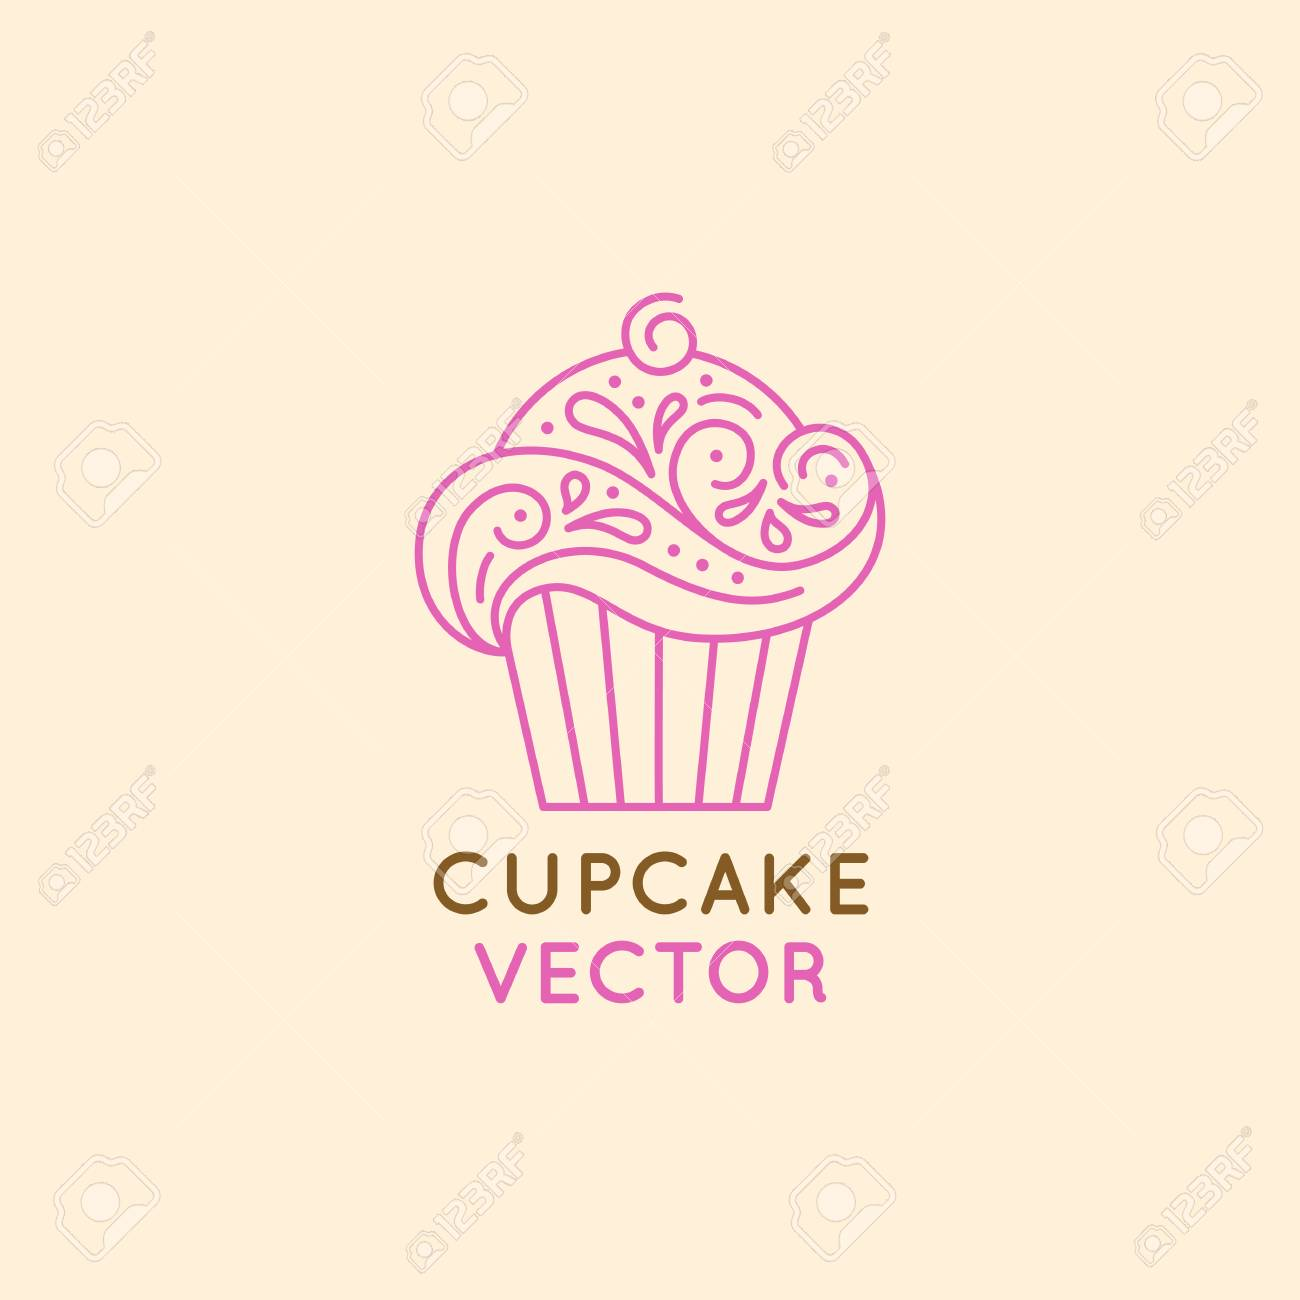 Vector design of sweet cupcake for confectionery store, bakery and cafe businesses - 83918407